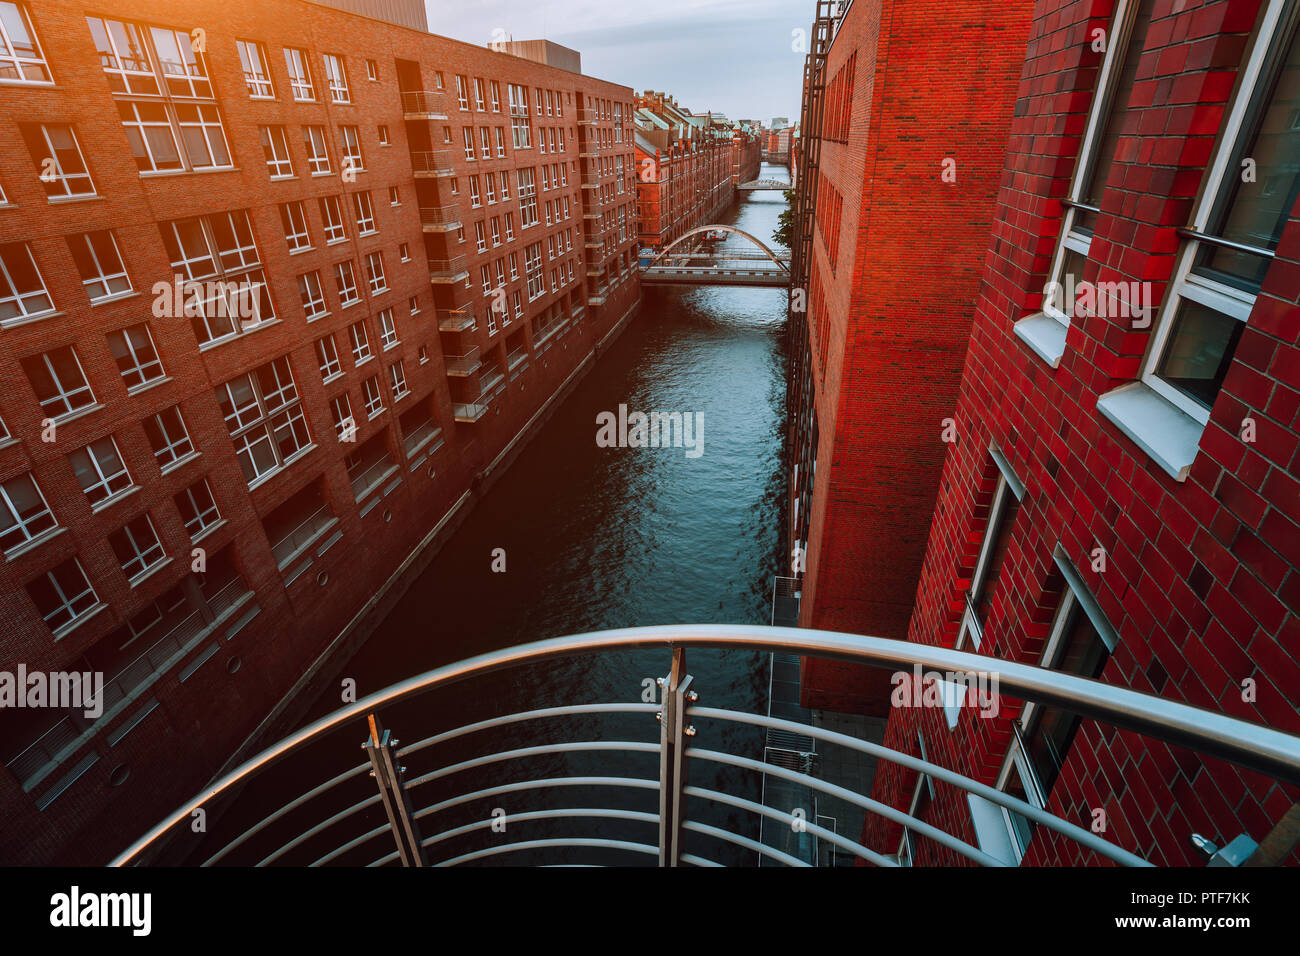 Top view of Warehouse District from canal side with red brick buildings of Speicherstadt in Hamburg during sunset Stock Photo